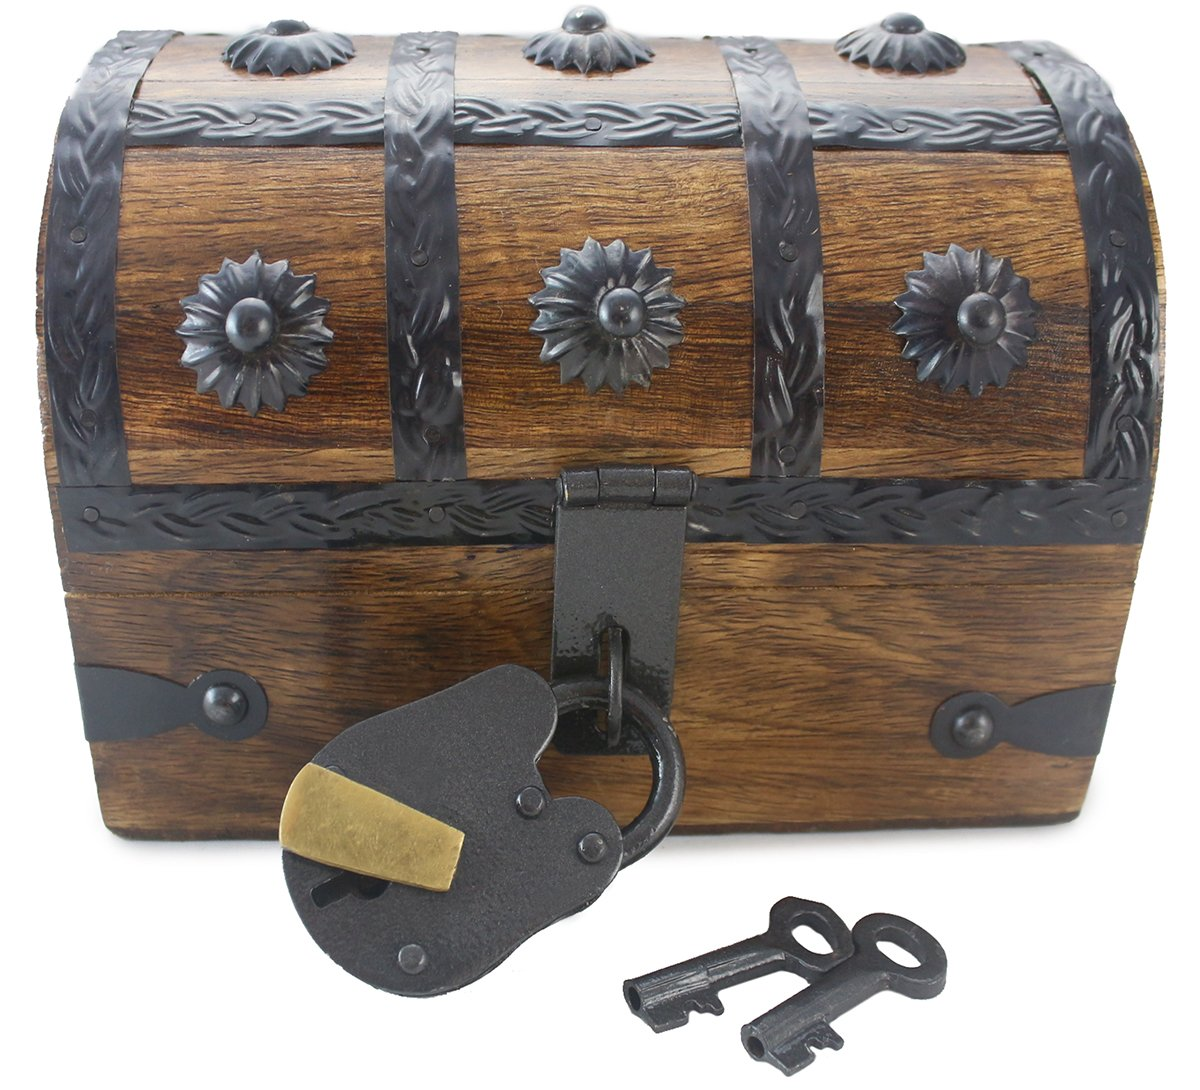 """Well Pack Box Treasure Chest Wooden Pirate Box 6.5"""" x 4.5"""" x 4.5"""" Nautical Locking Trunk Kids Toy Party Accessory or Decorative Box"""